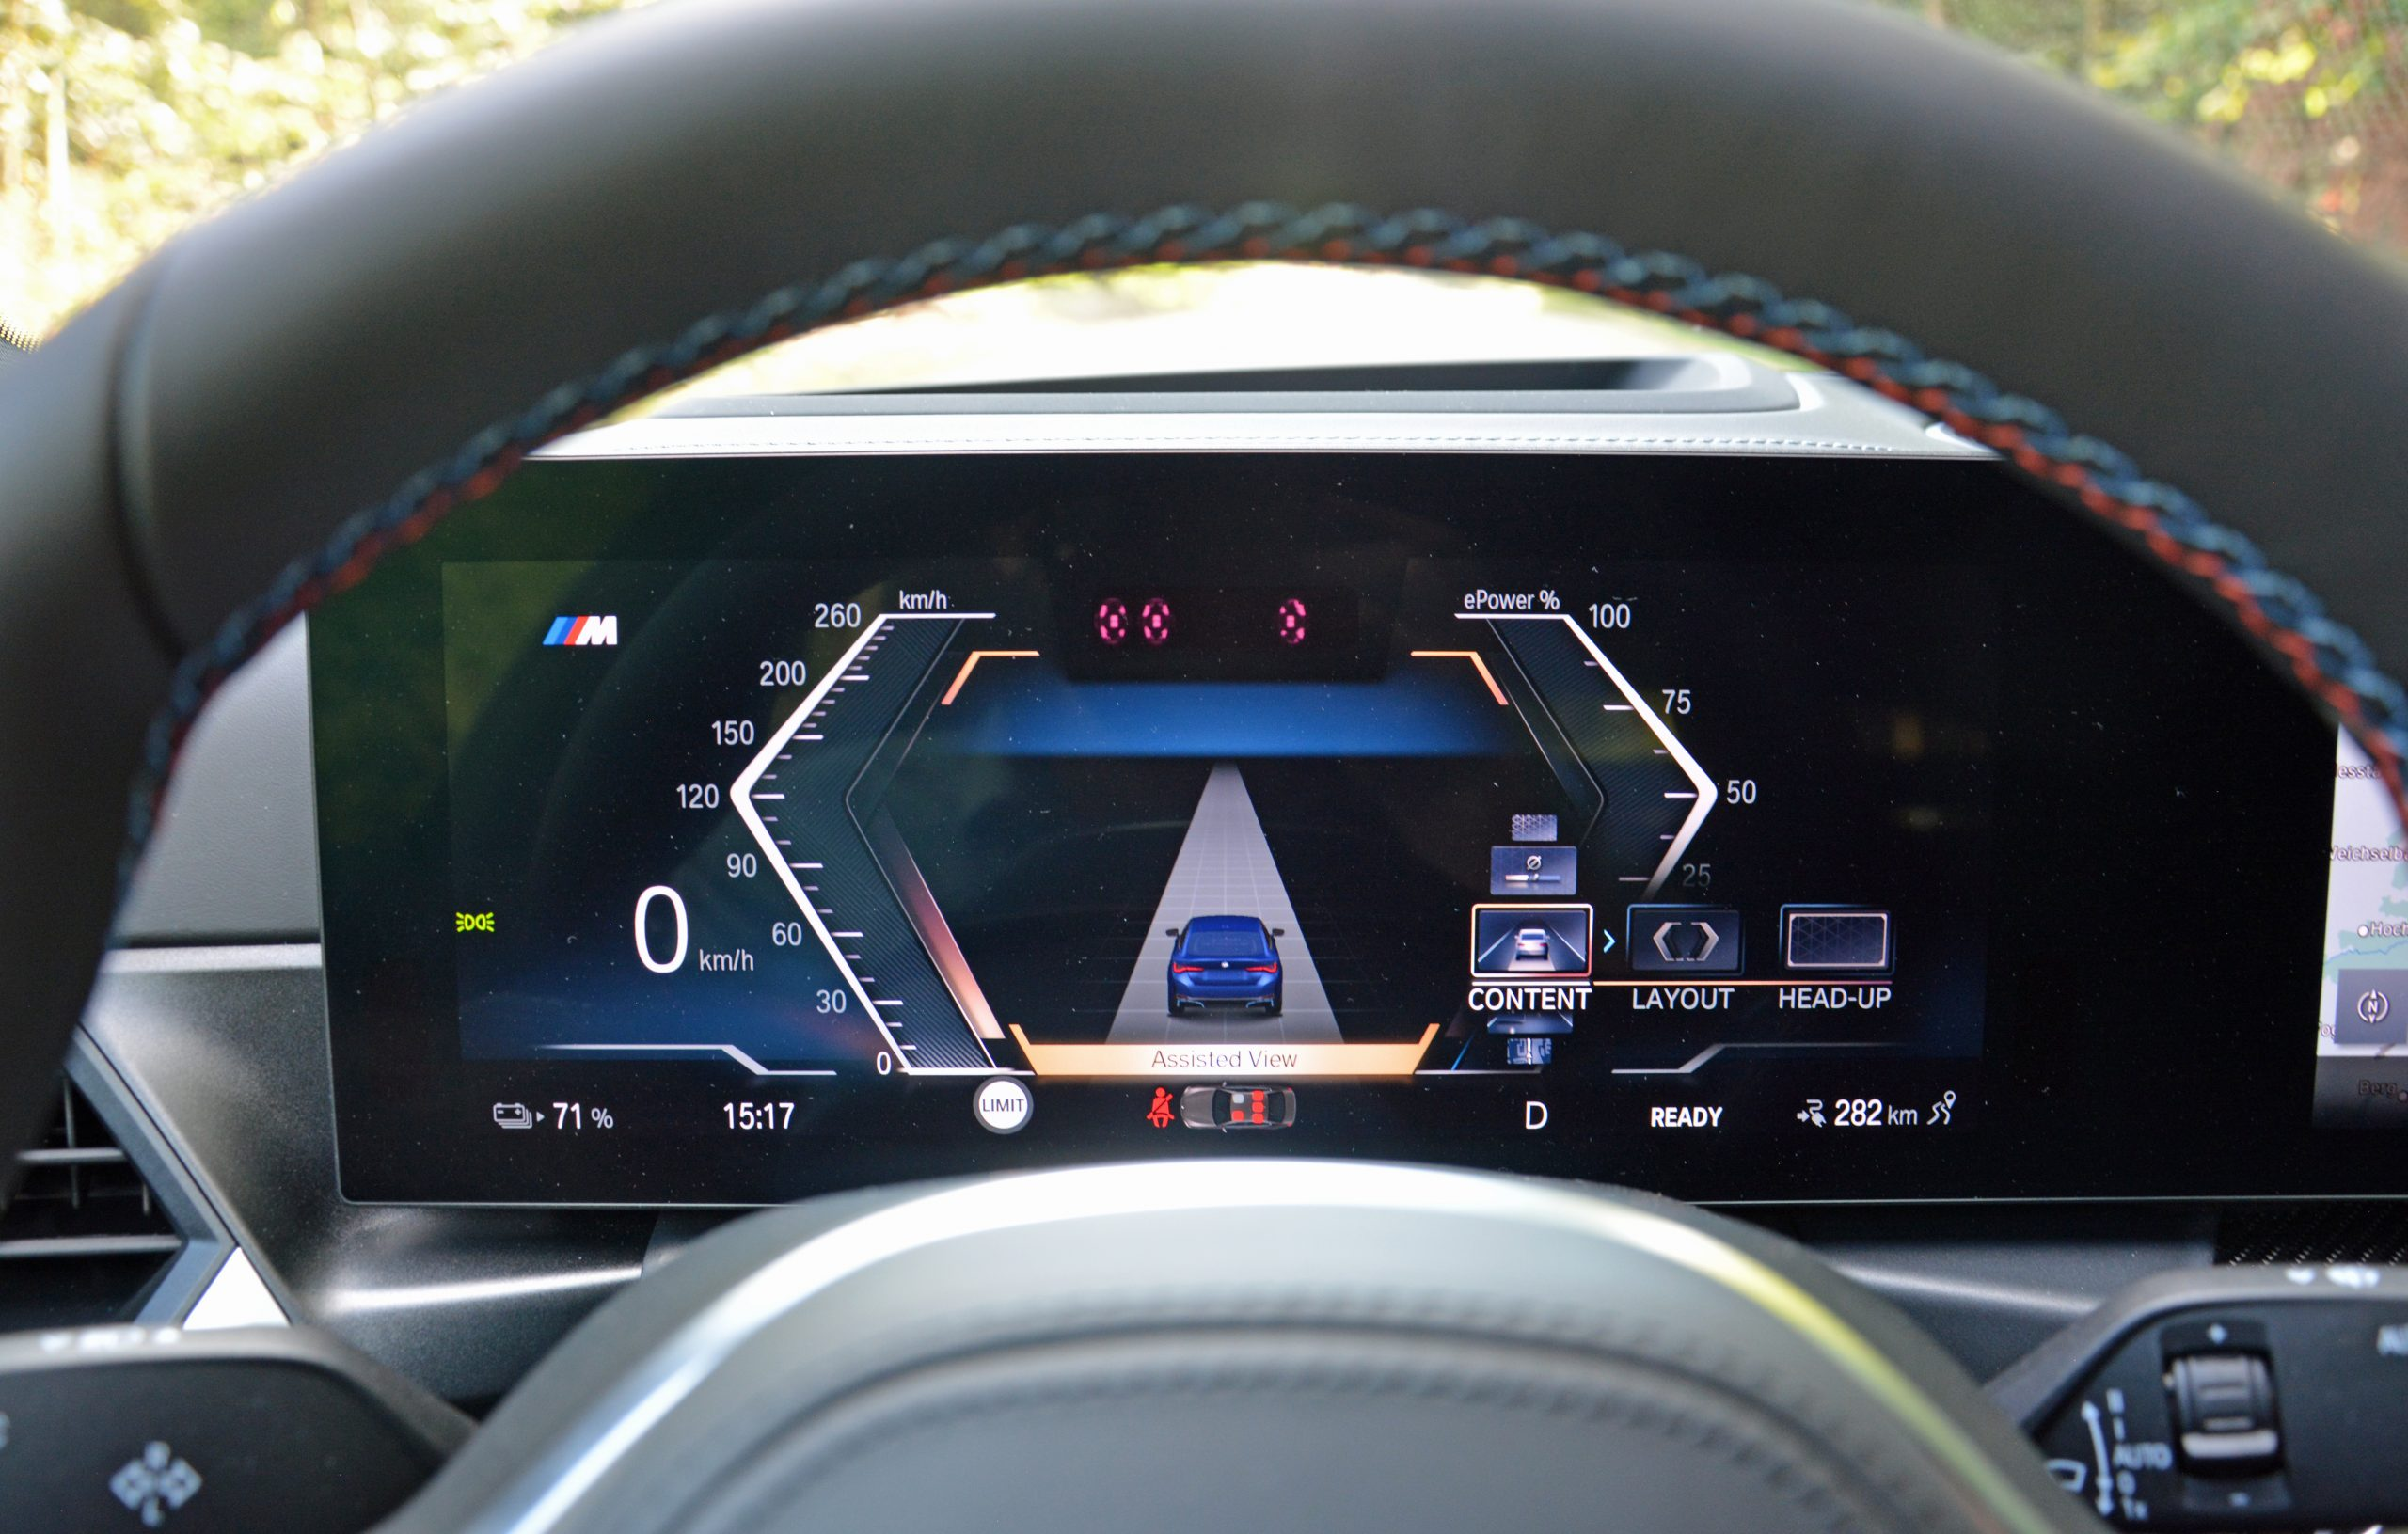 2022 BMW i4 M50 interior digital driver display assisted view